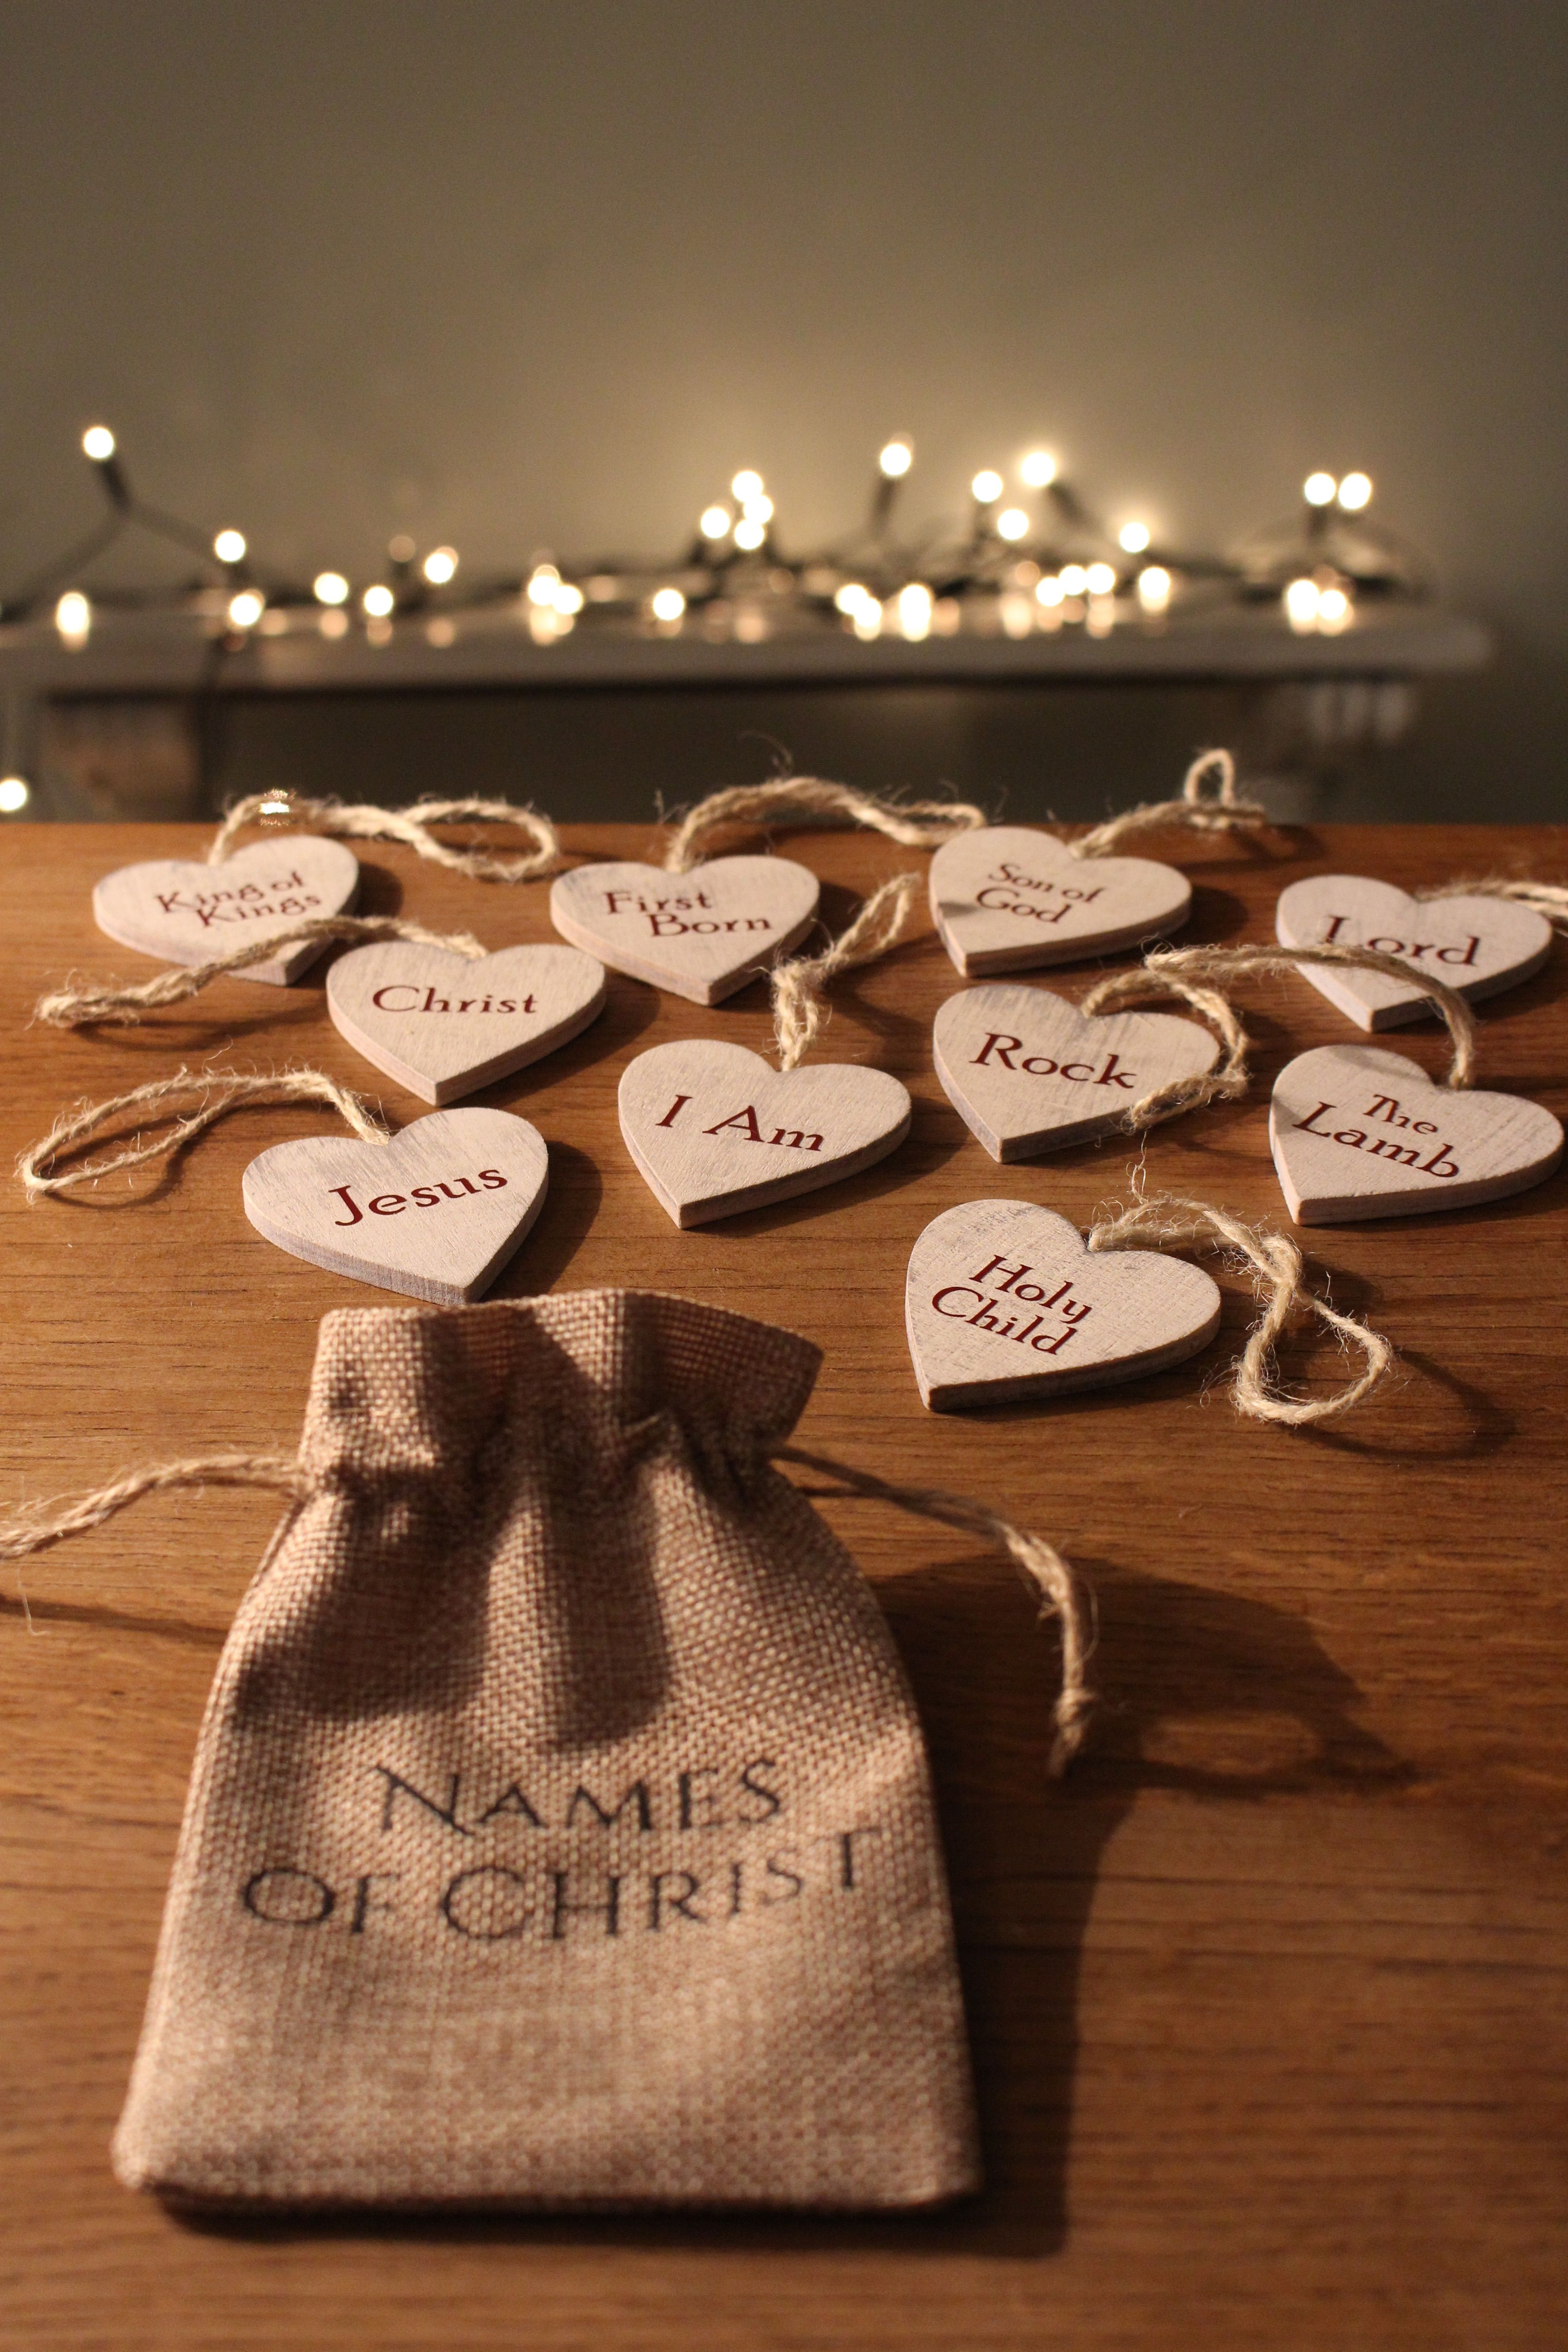 Names of Christ Tree Ornaments The hustle and bustle of